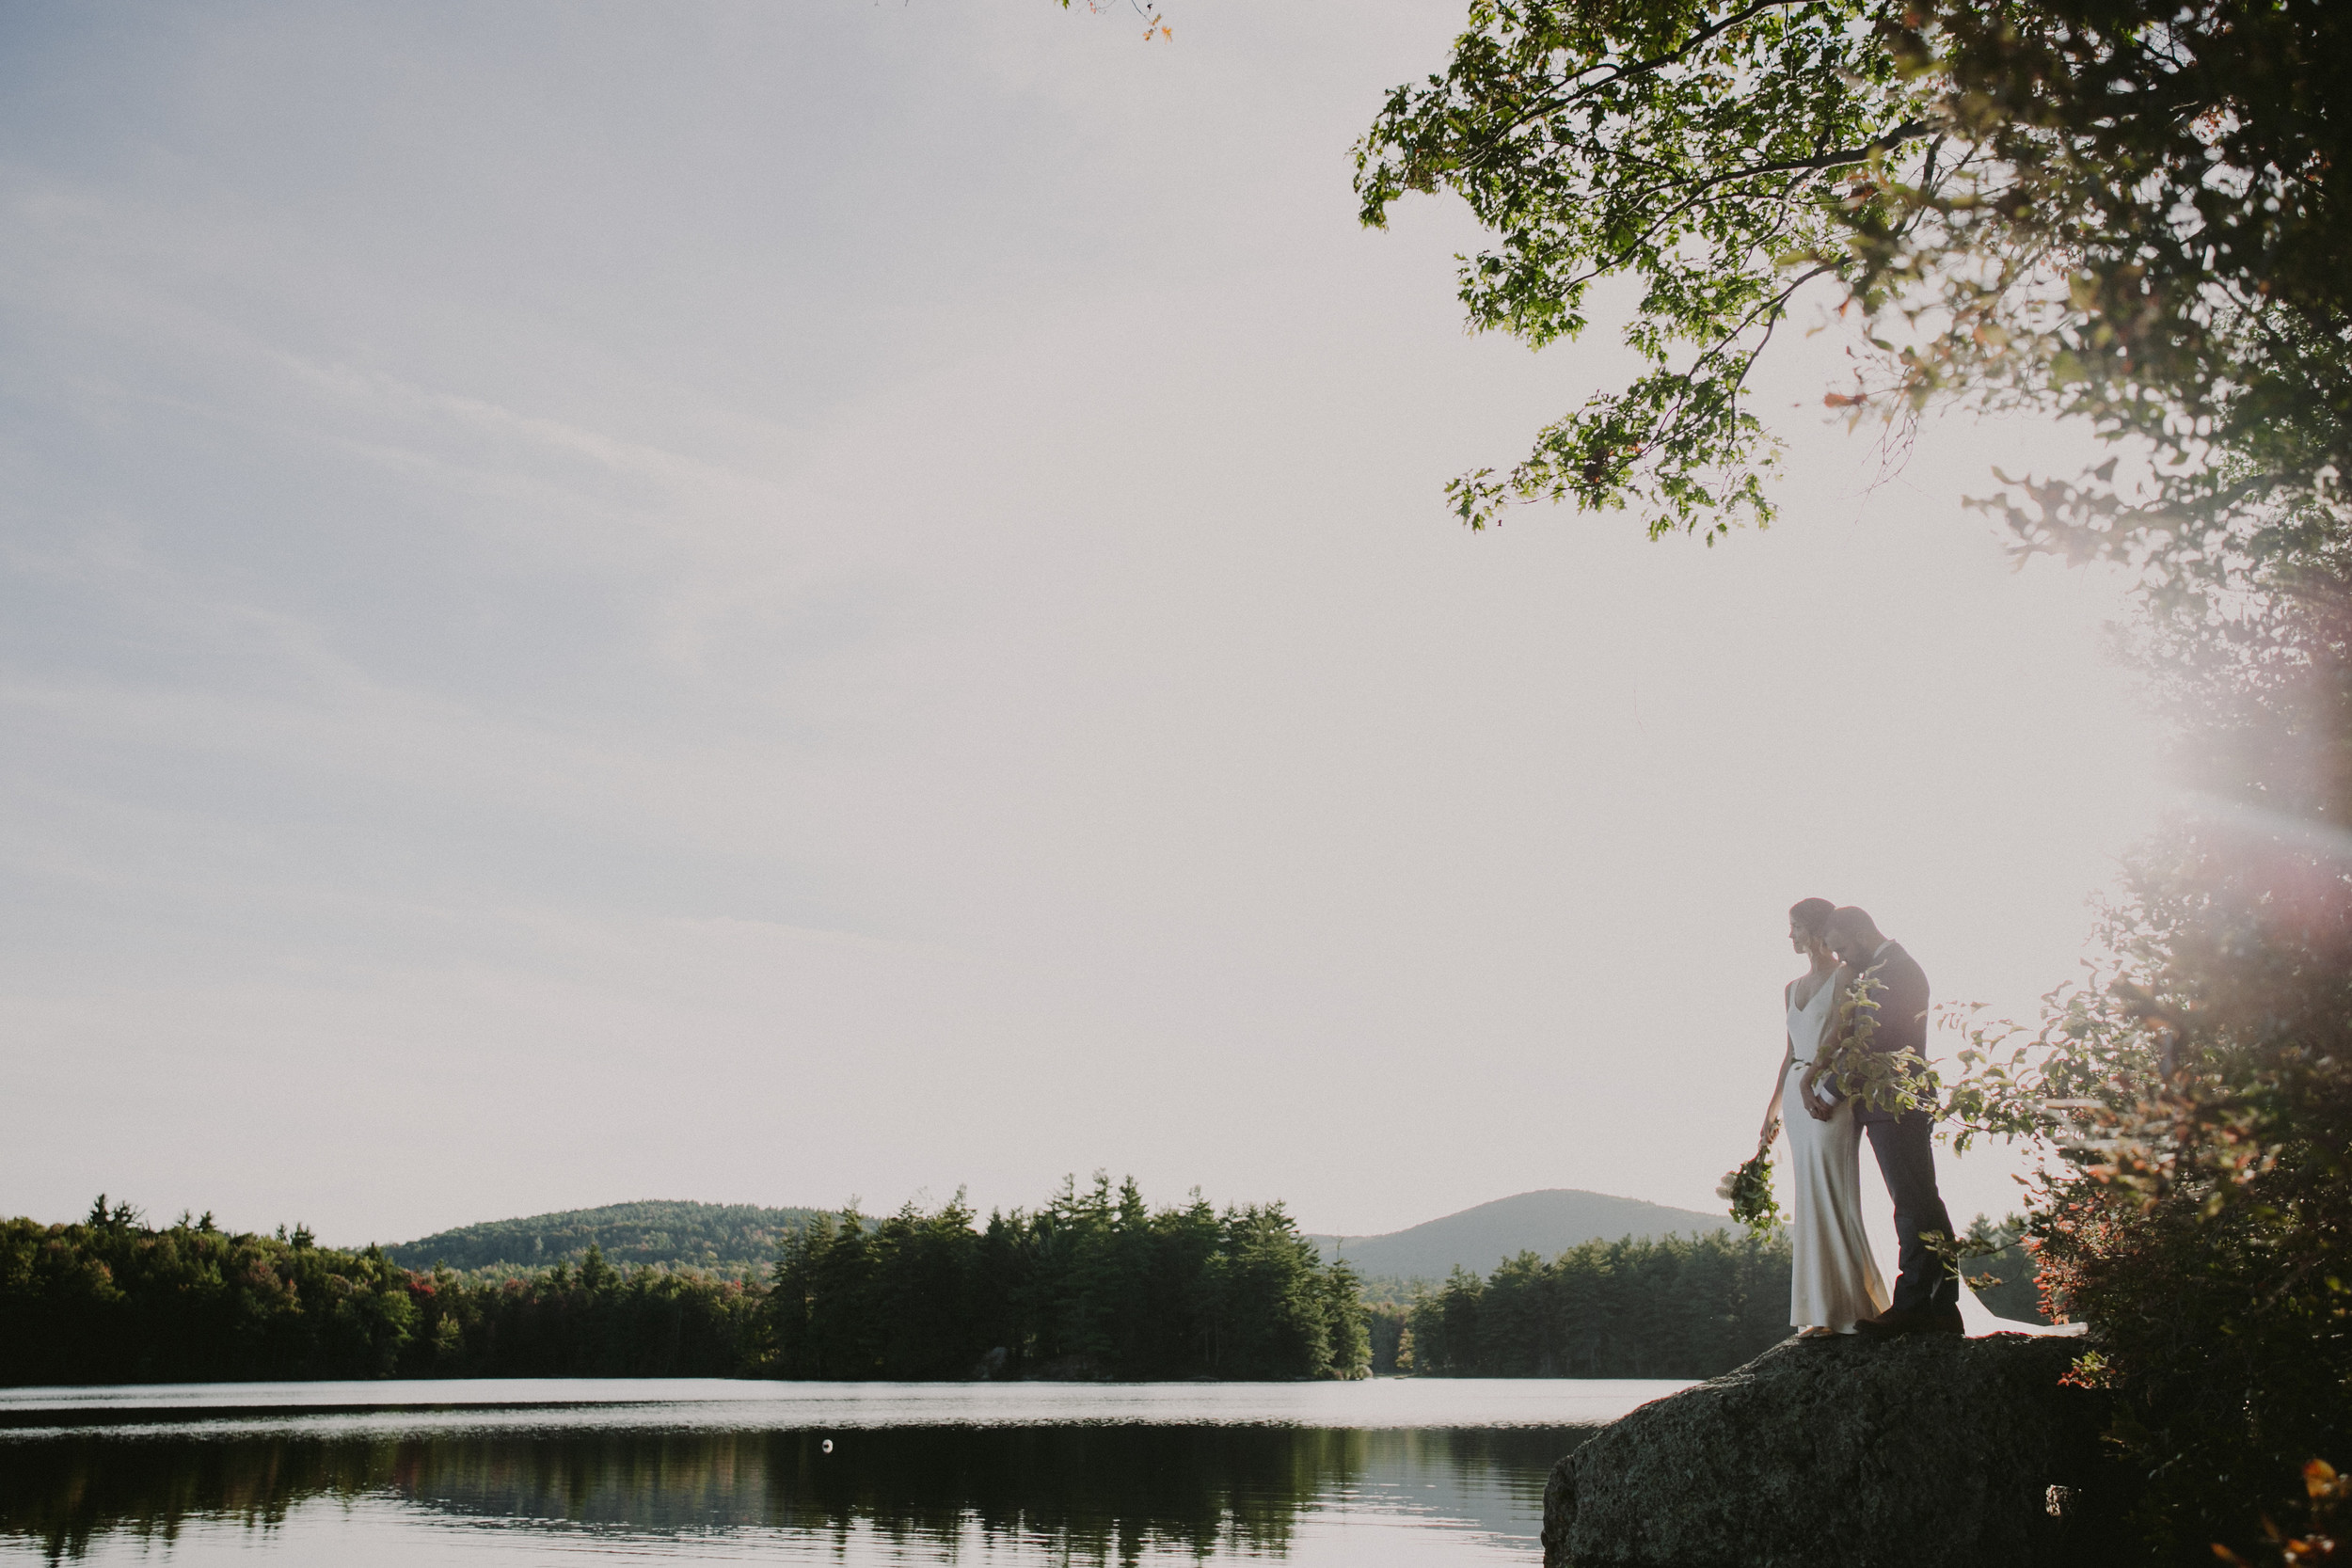 windsor mountain summer camp wedding NH chellise michael photography 1793.jpg